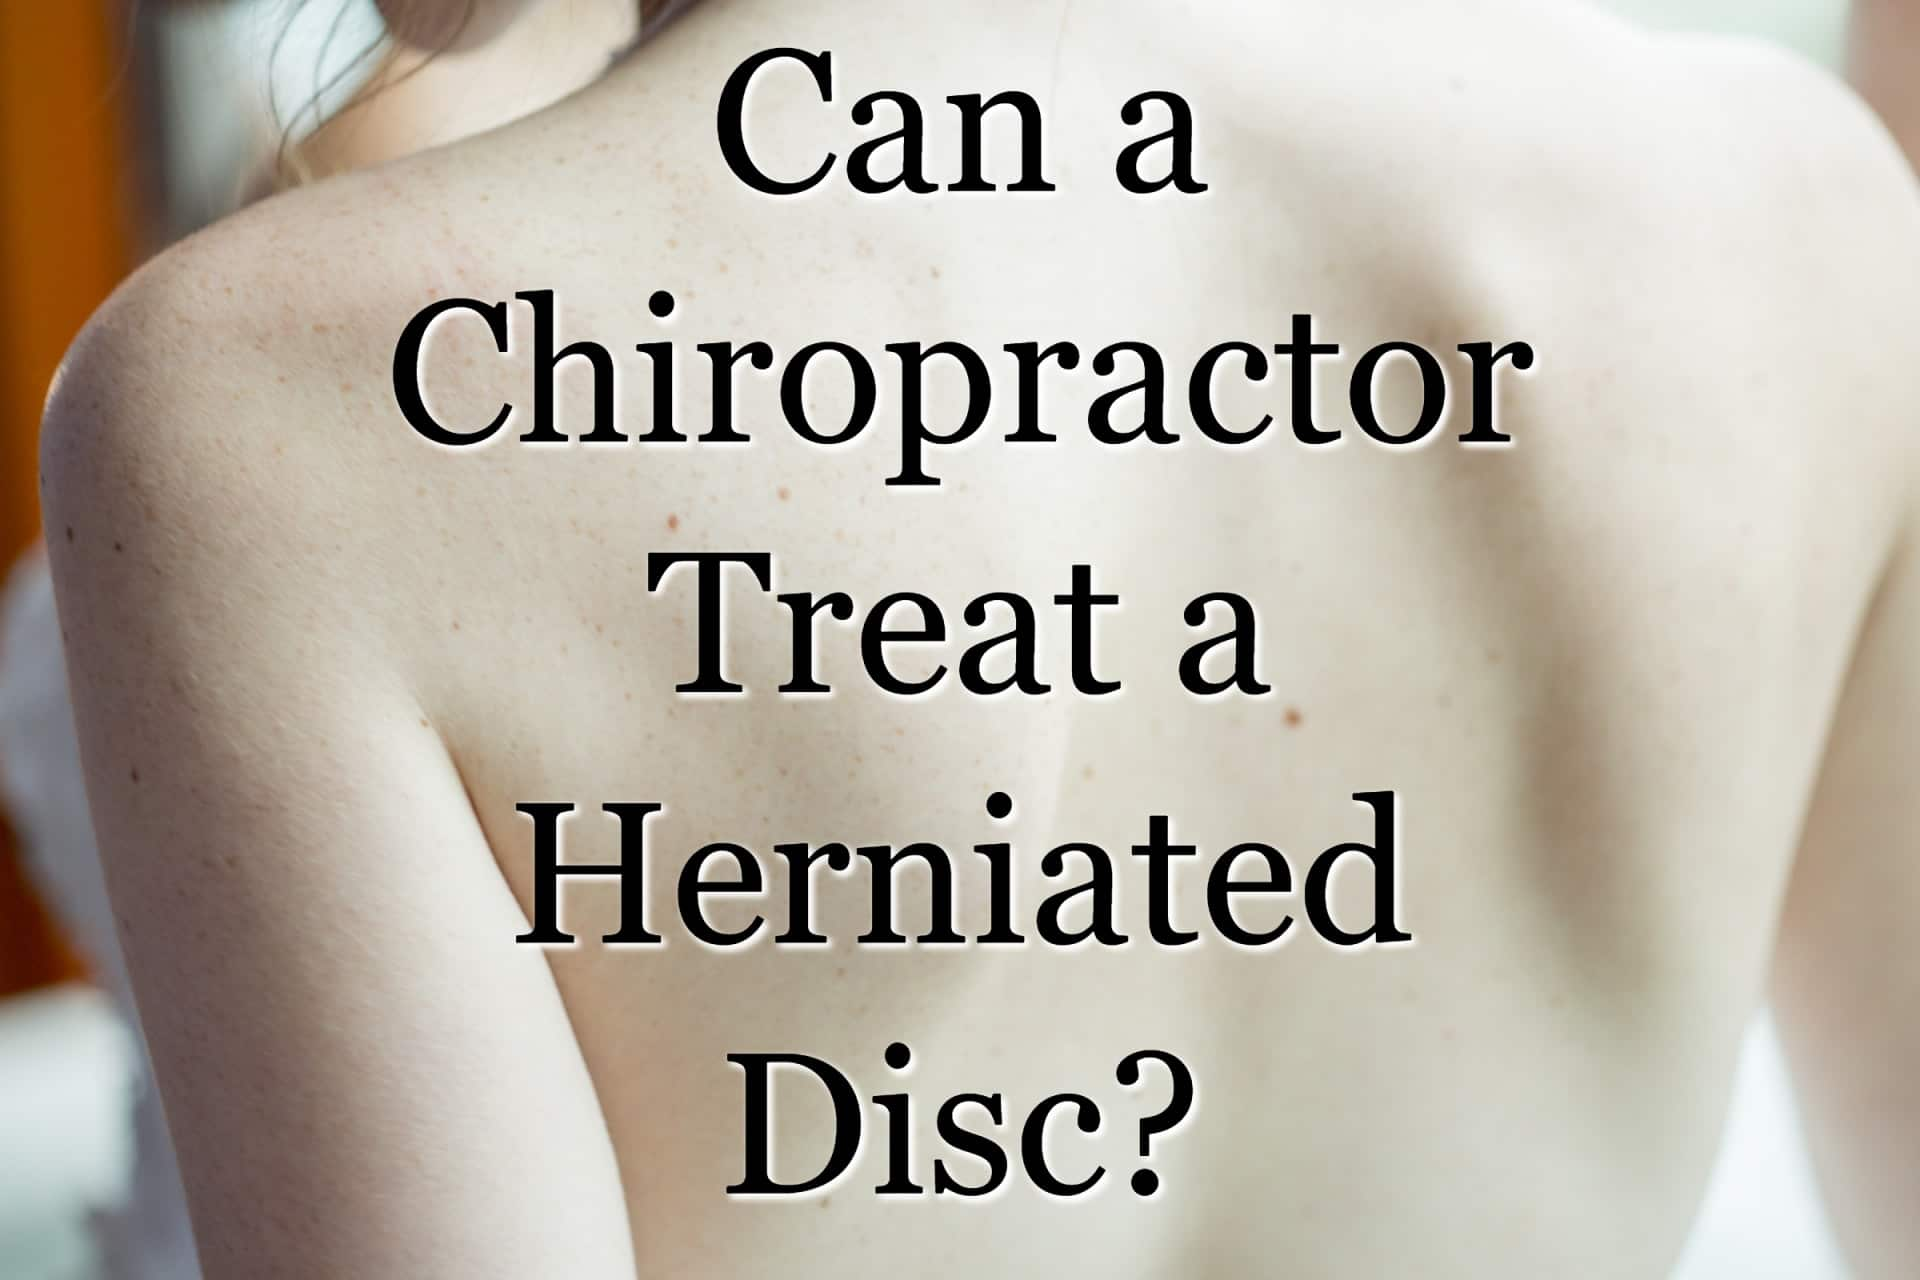 Can a Chiropractor Treat a Herniated Disc?